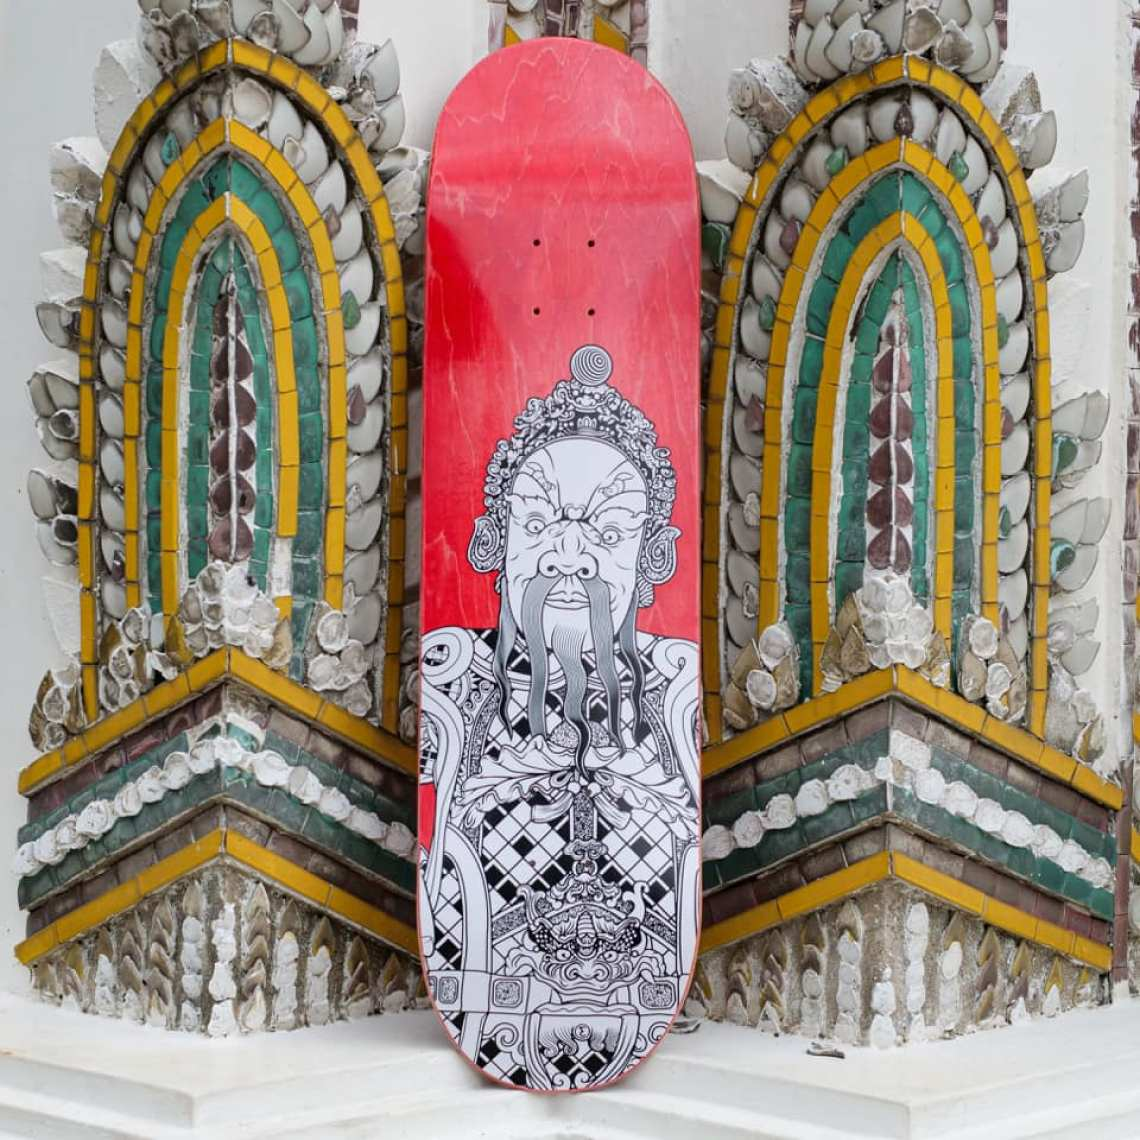 Stone Giants Deck Series By TR For Preduce Skateboards 1